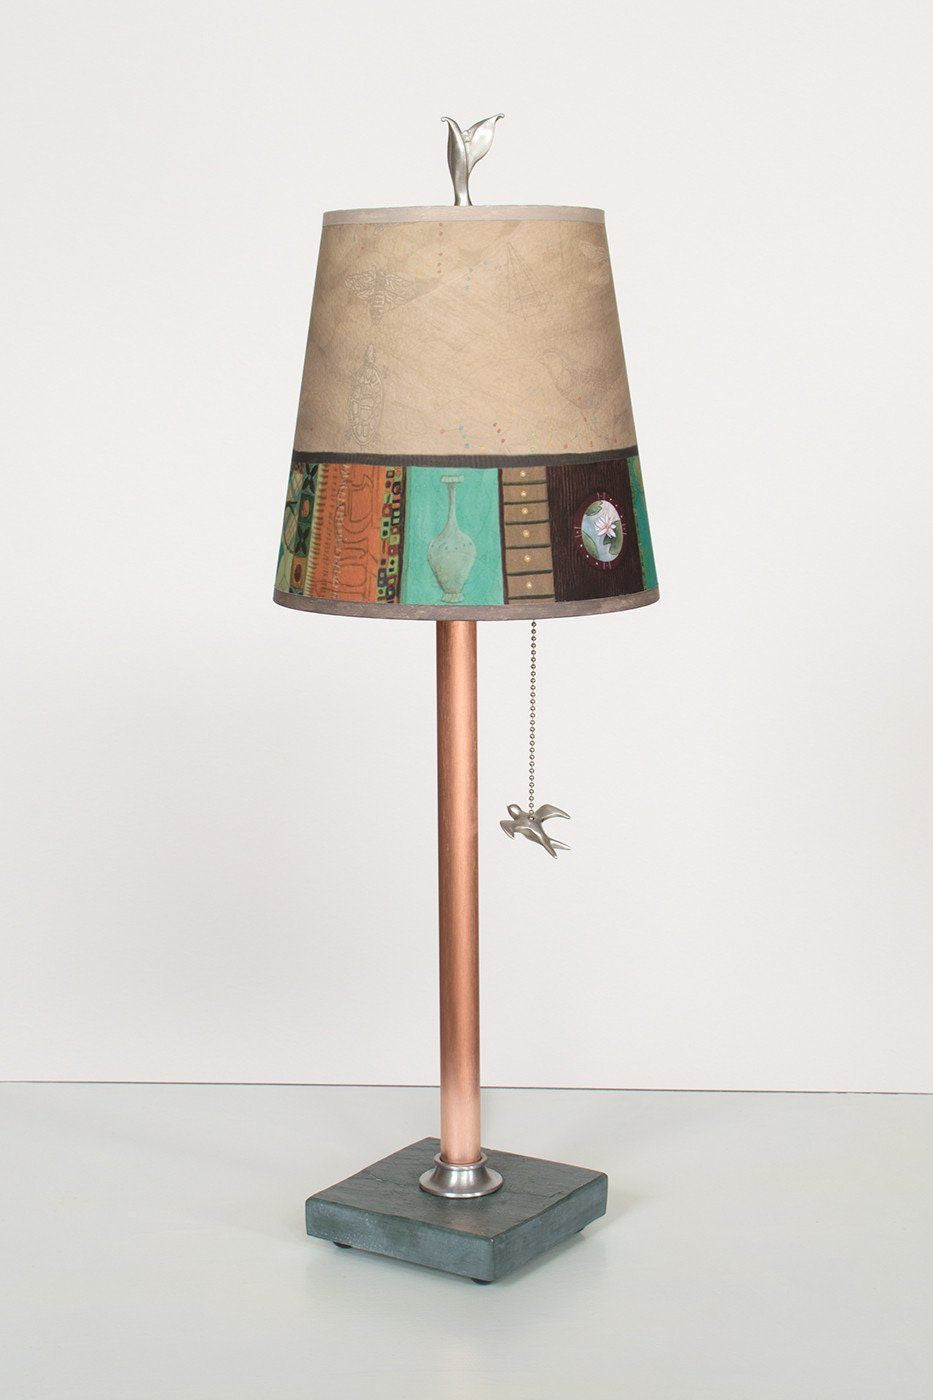 Copper Table Lamp on Vermont Slate Base with Small Drum Shade in Linen Match Lit